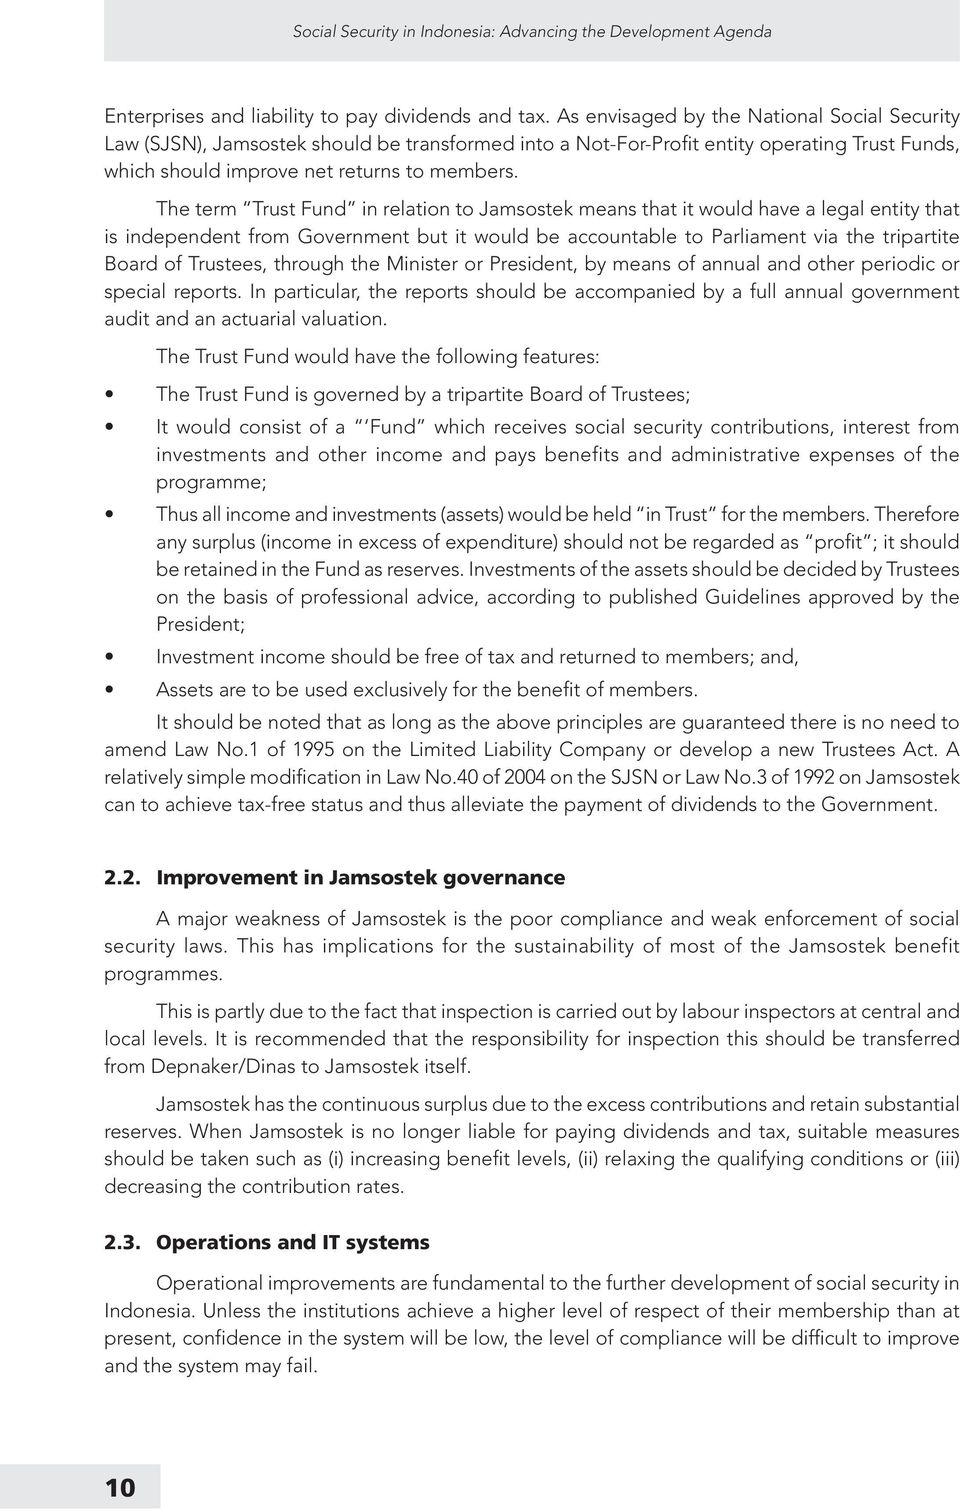 The term Trust Fund in relation to Jamsostek means that it would have a legal entity that is independent from Government but it would be accountable to Parliament via the tripartite Board of